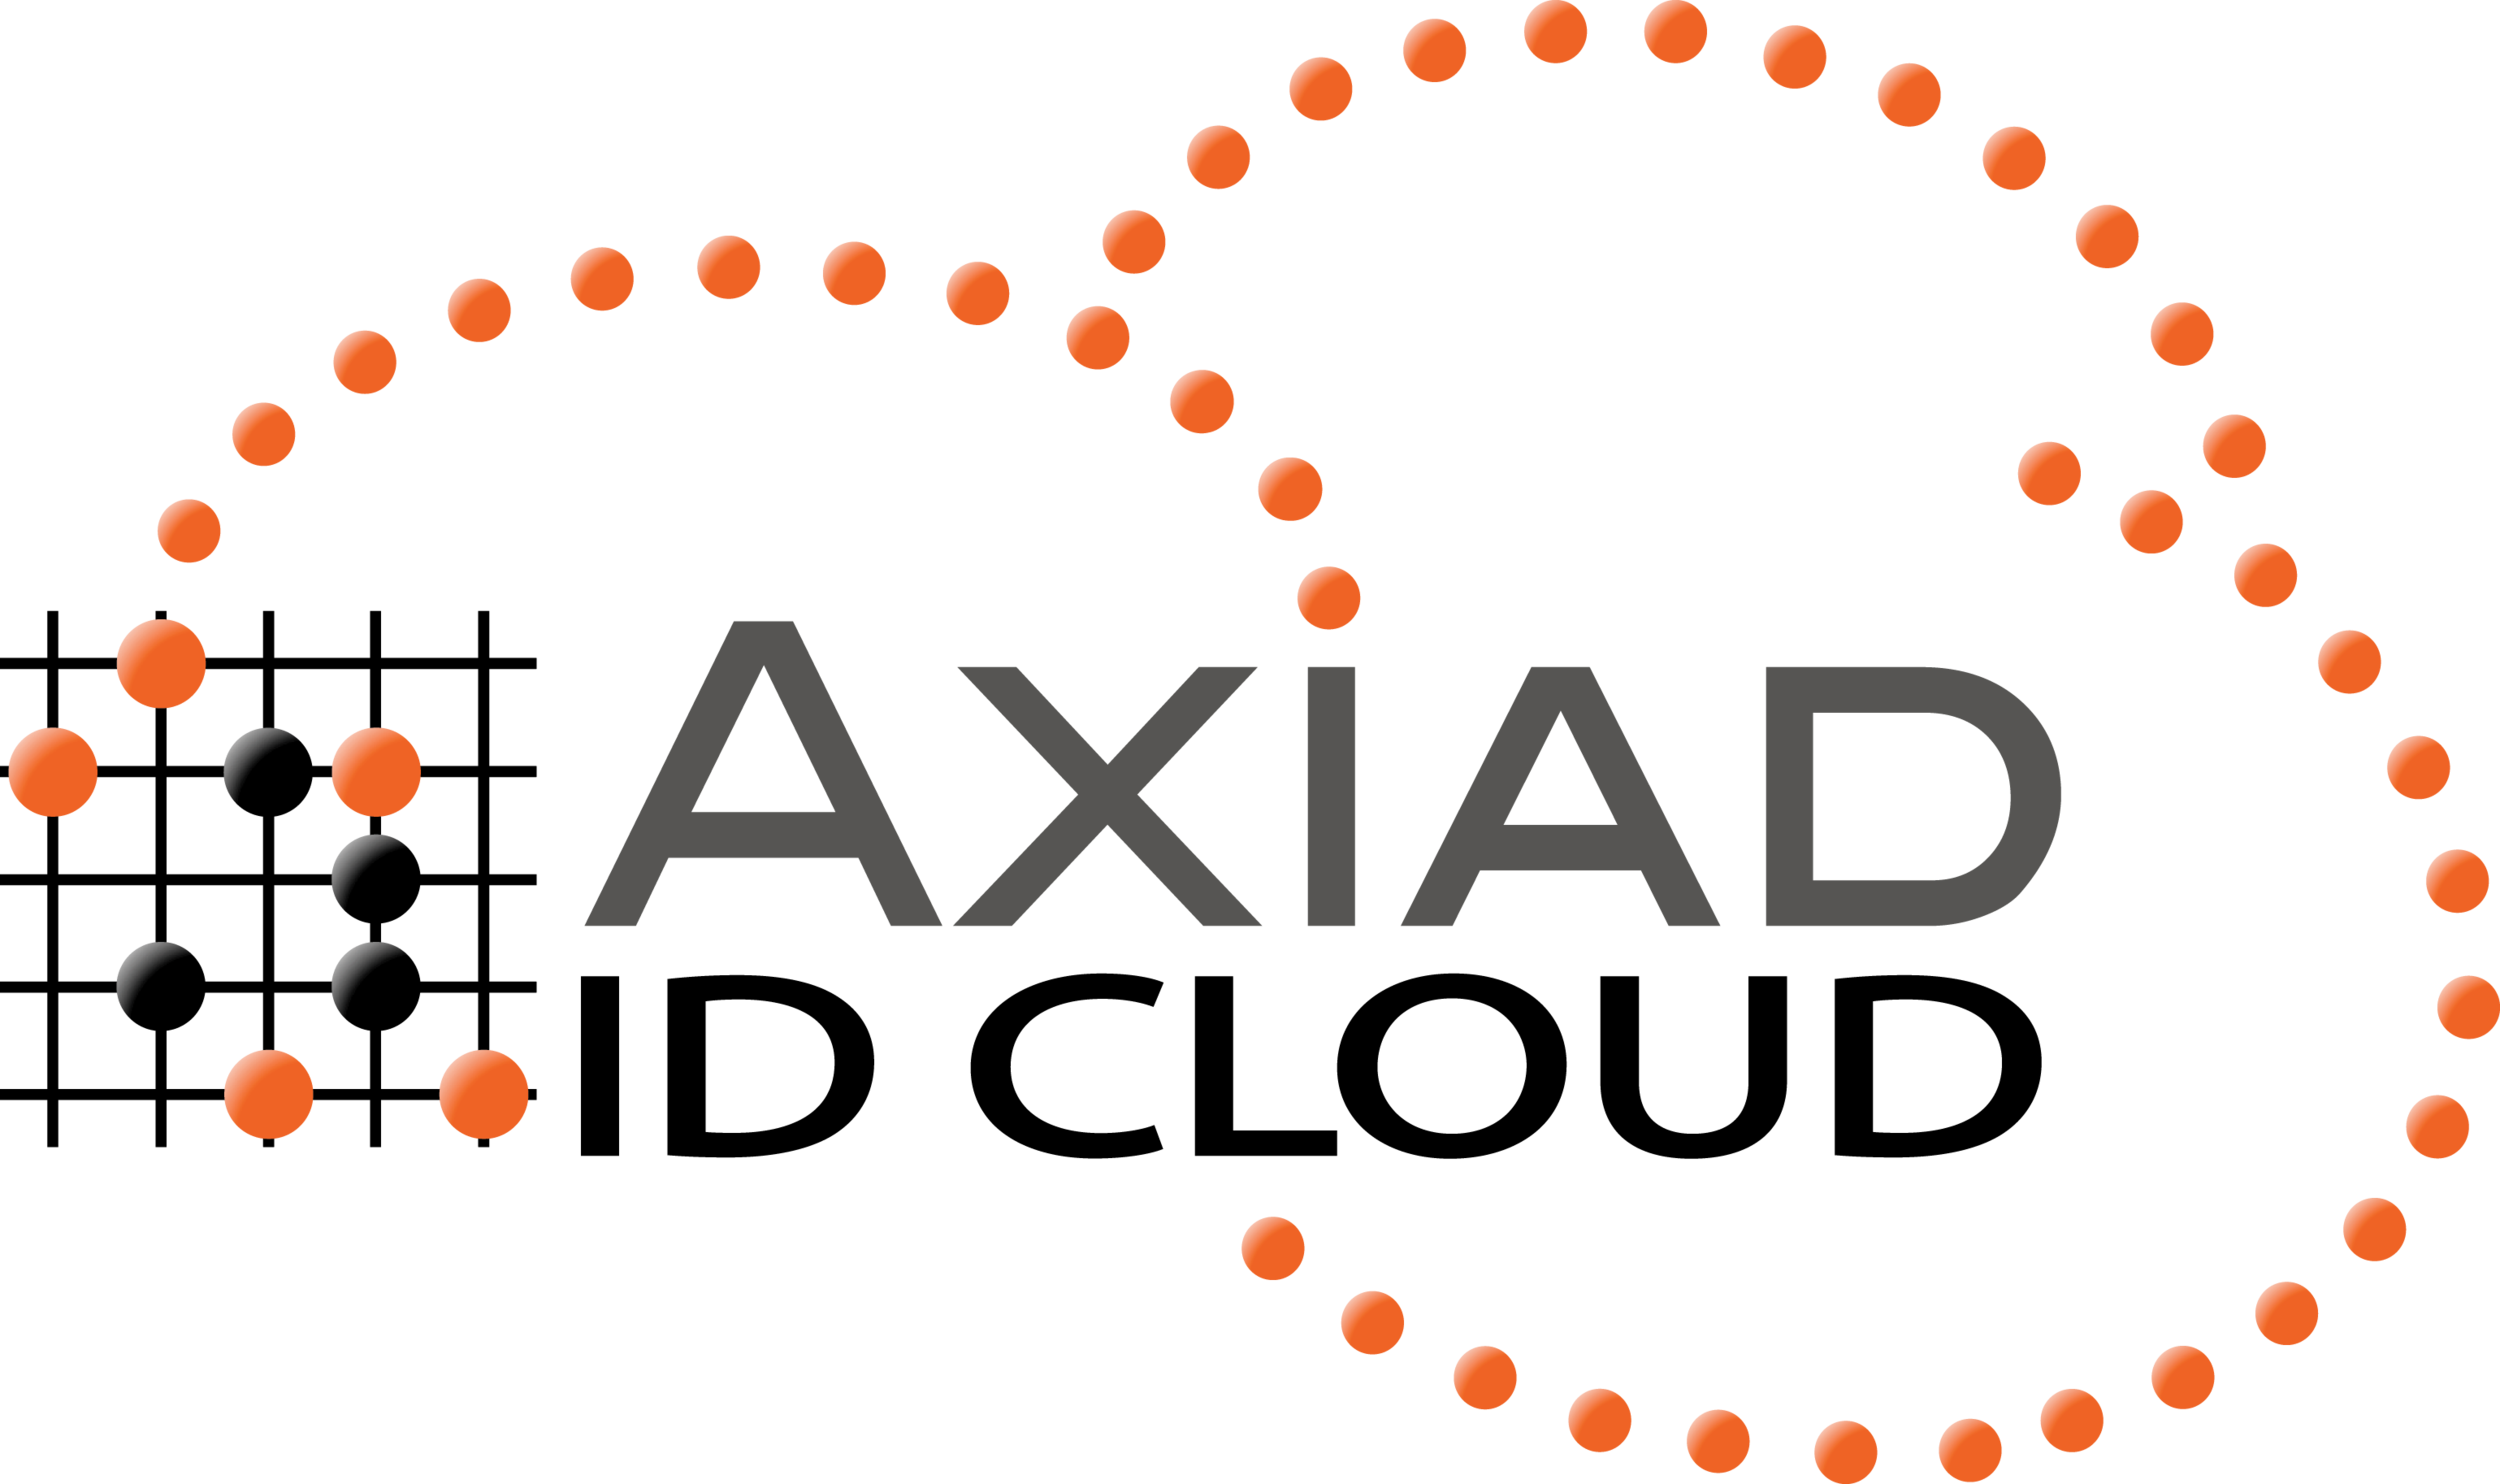 Axiad-ID-Cloud_Logo_Oct_2015 (1)_png.png